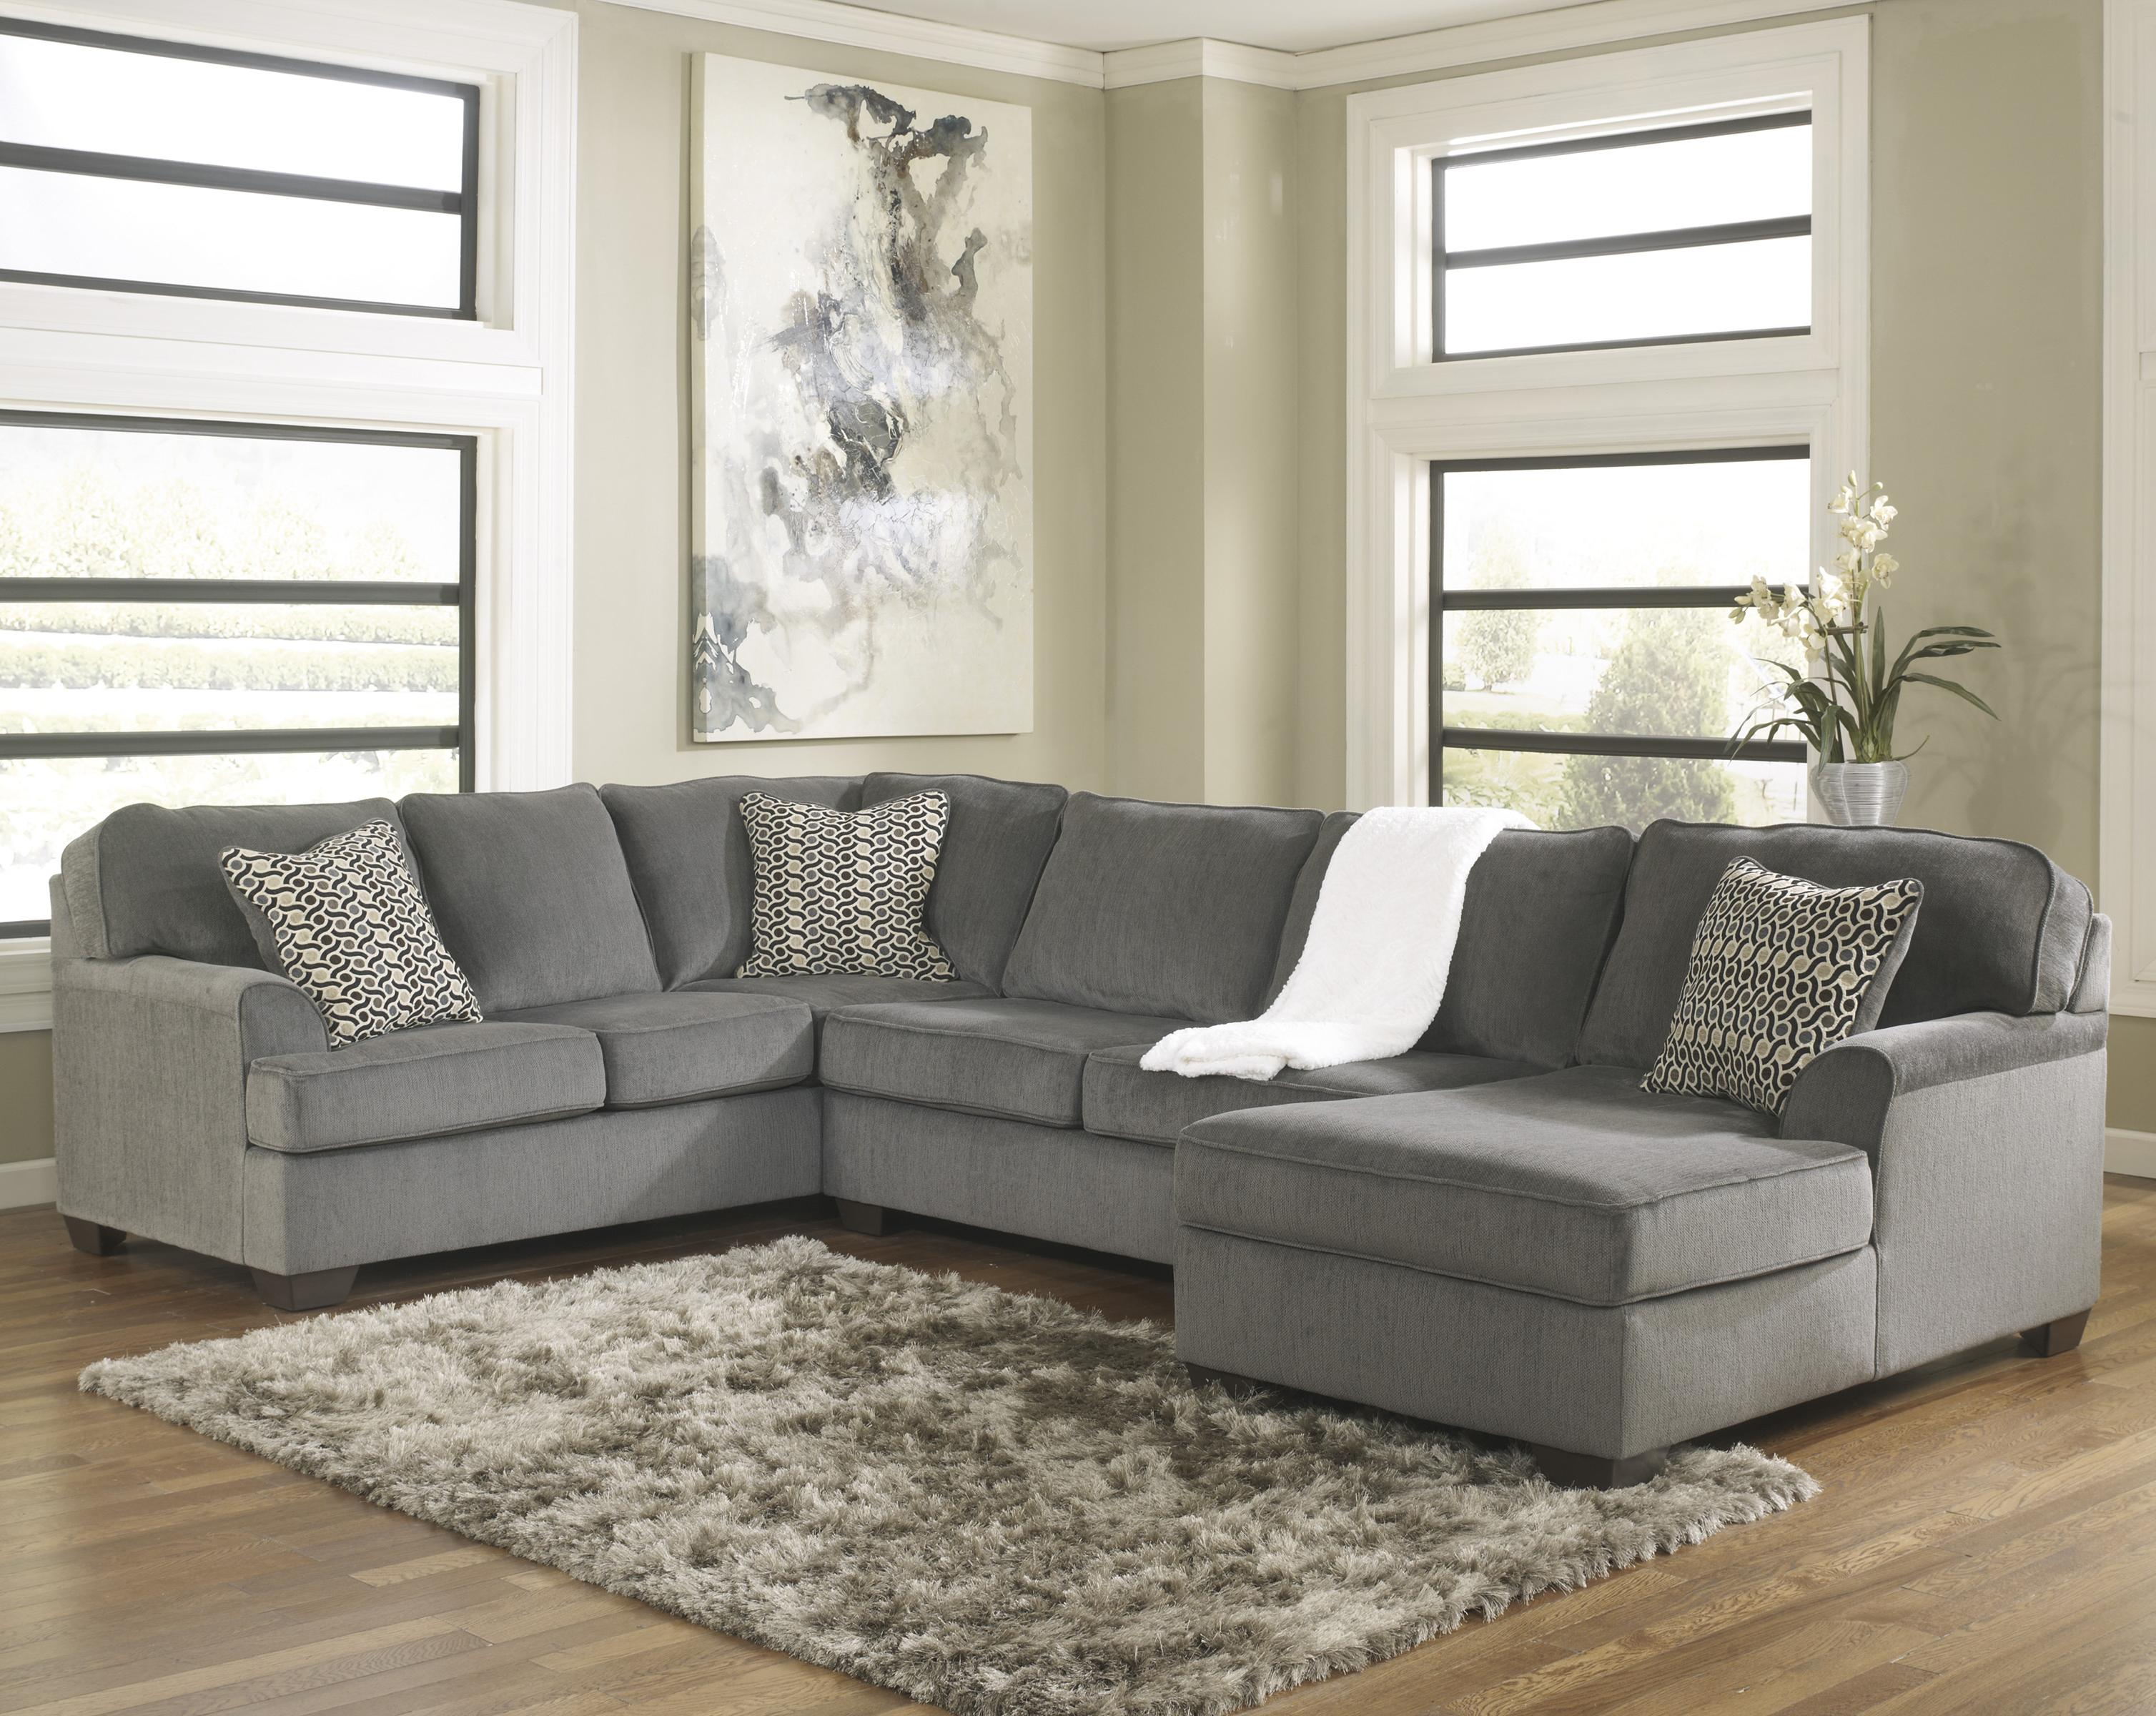 Ashley furniture loric smoke contemporary 3 piece for Ashley furniture chaise lounge couch